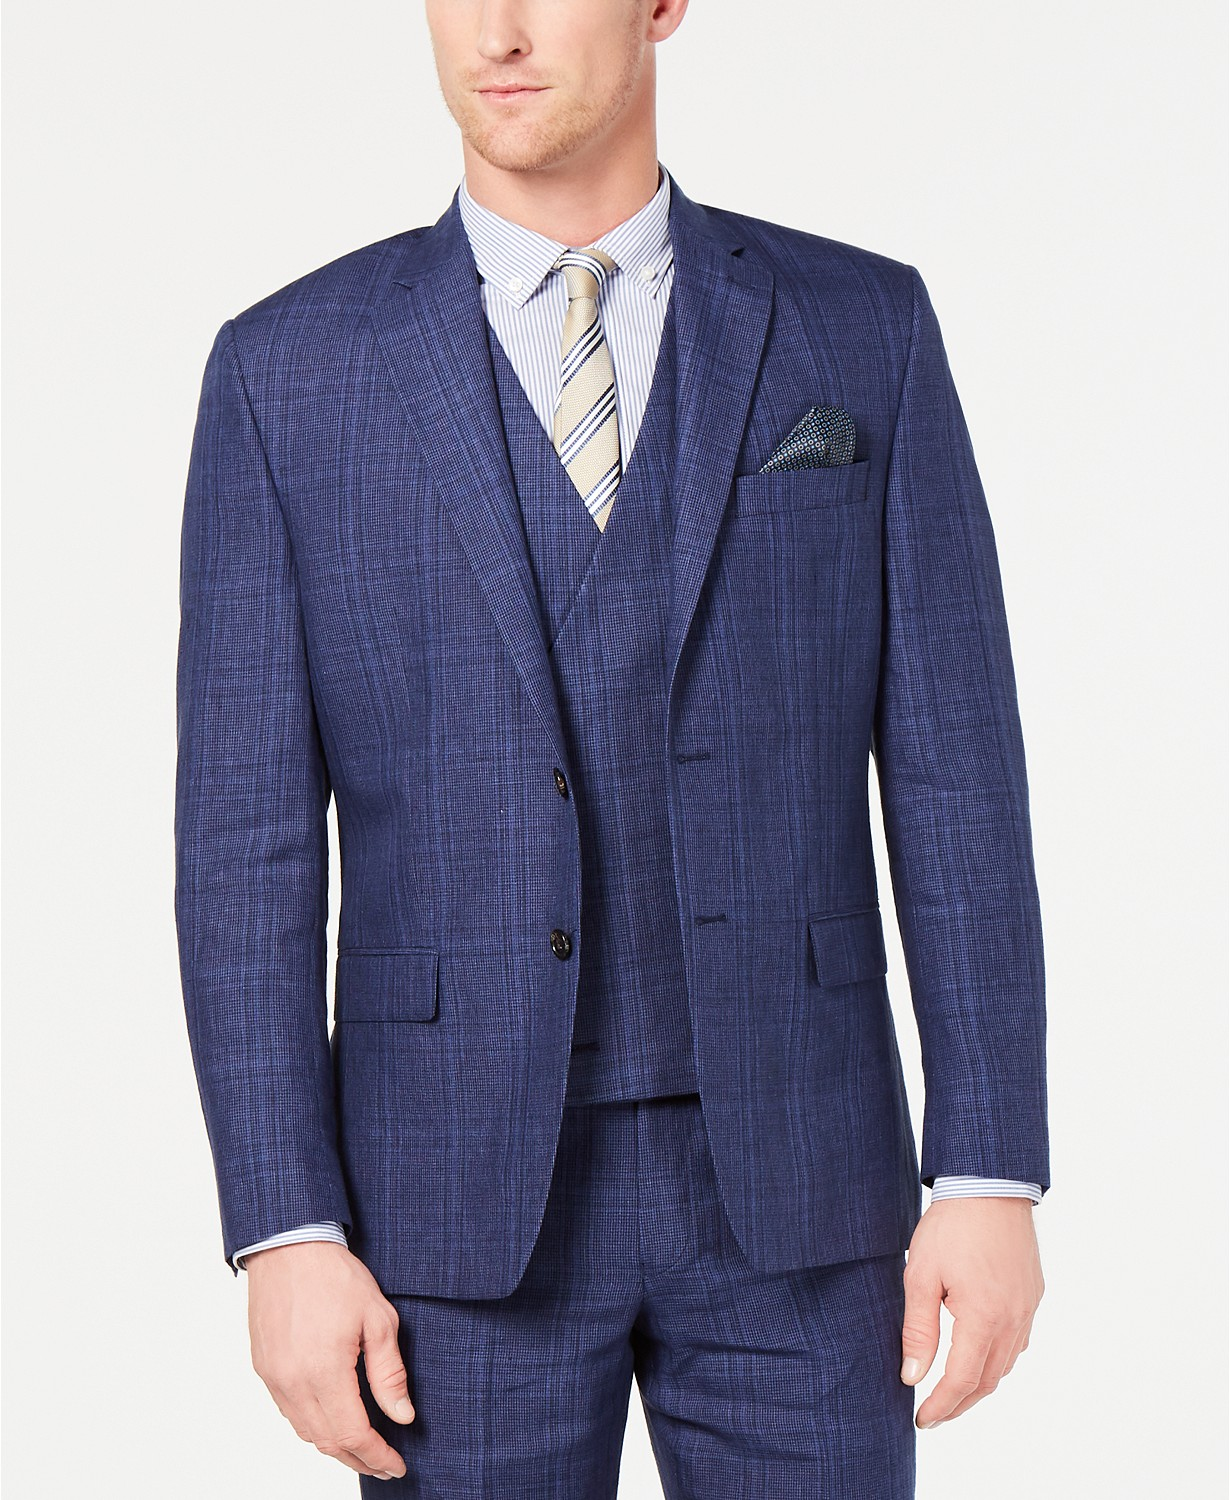 Lauren Ralph Lauren Mens Classic-Fit UltraFlex Stretch Suit Jacket